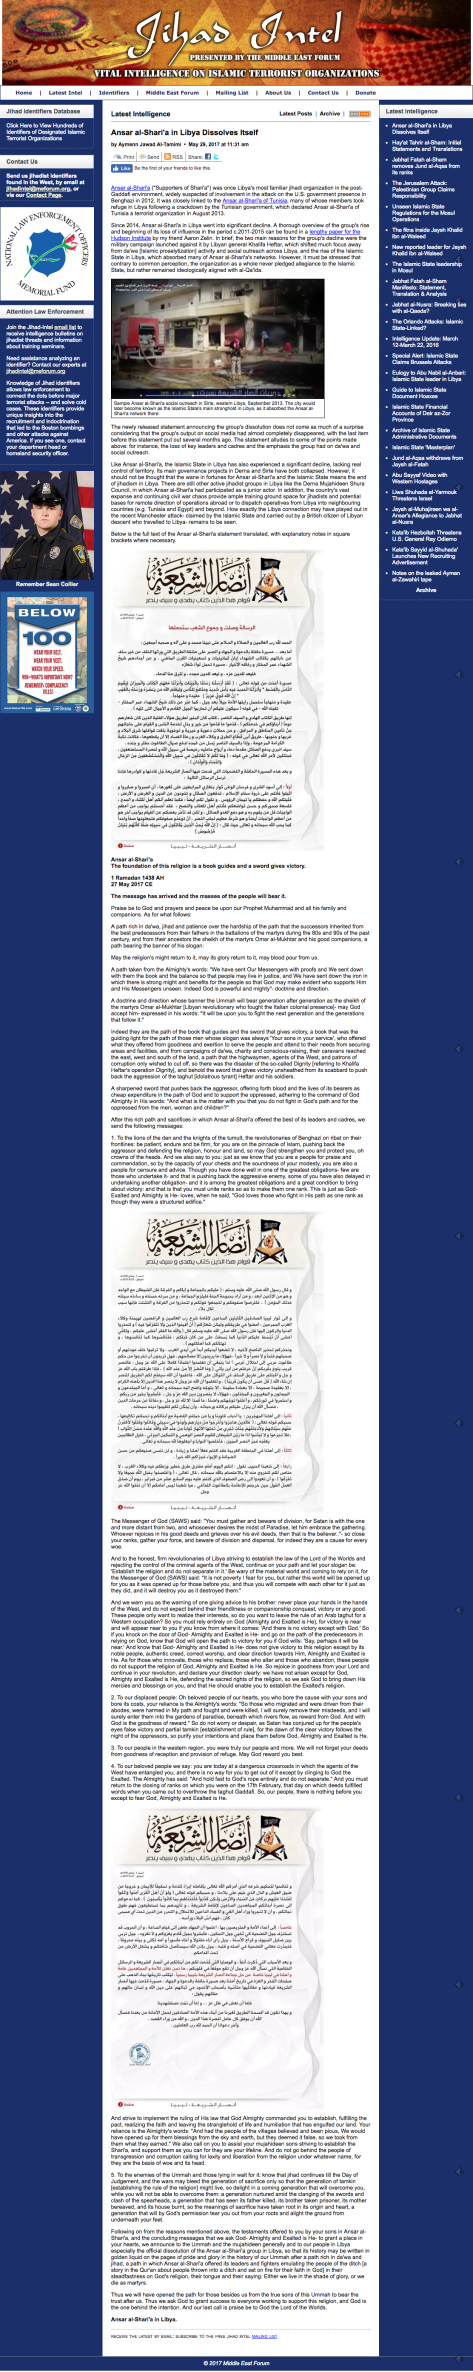 screencapture-jihadintel-meforum-org-207-ansar-al-sharia-in-libya-dissolves-itself-1496321038005